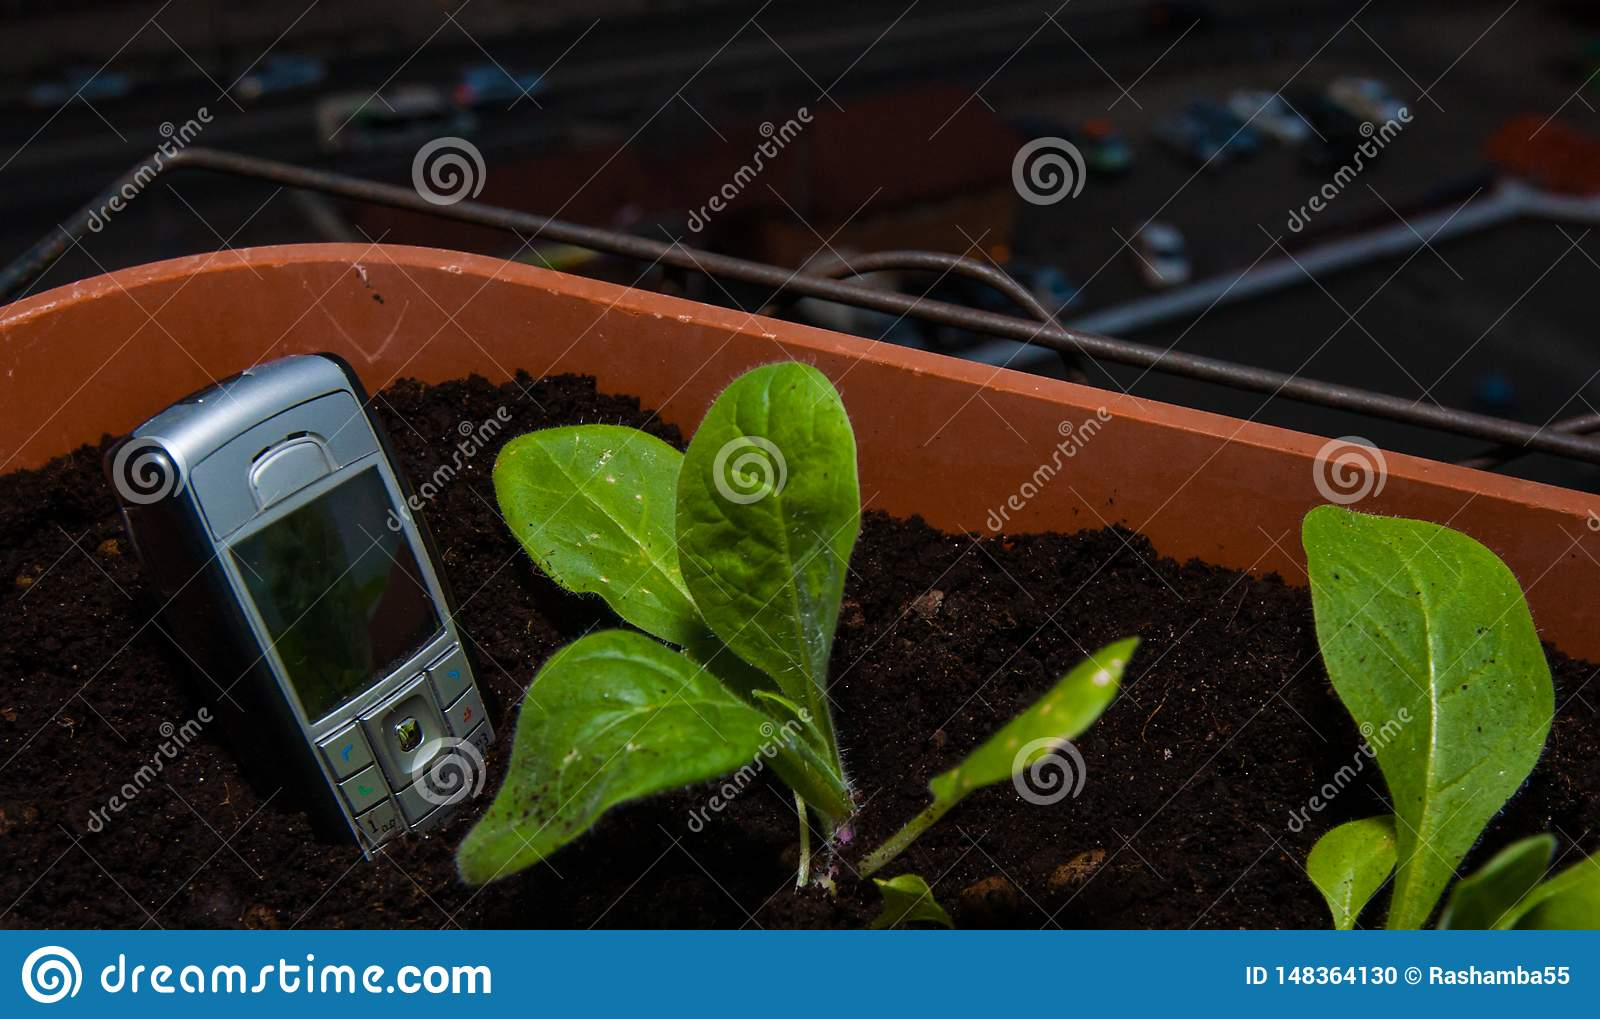 cell phone sticks out of the ground in a pot of flowers on the balcony